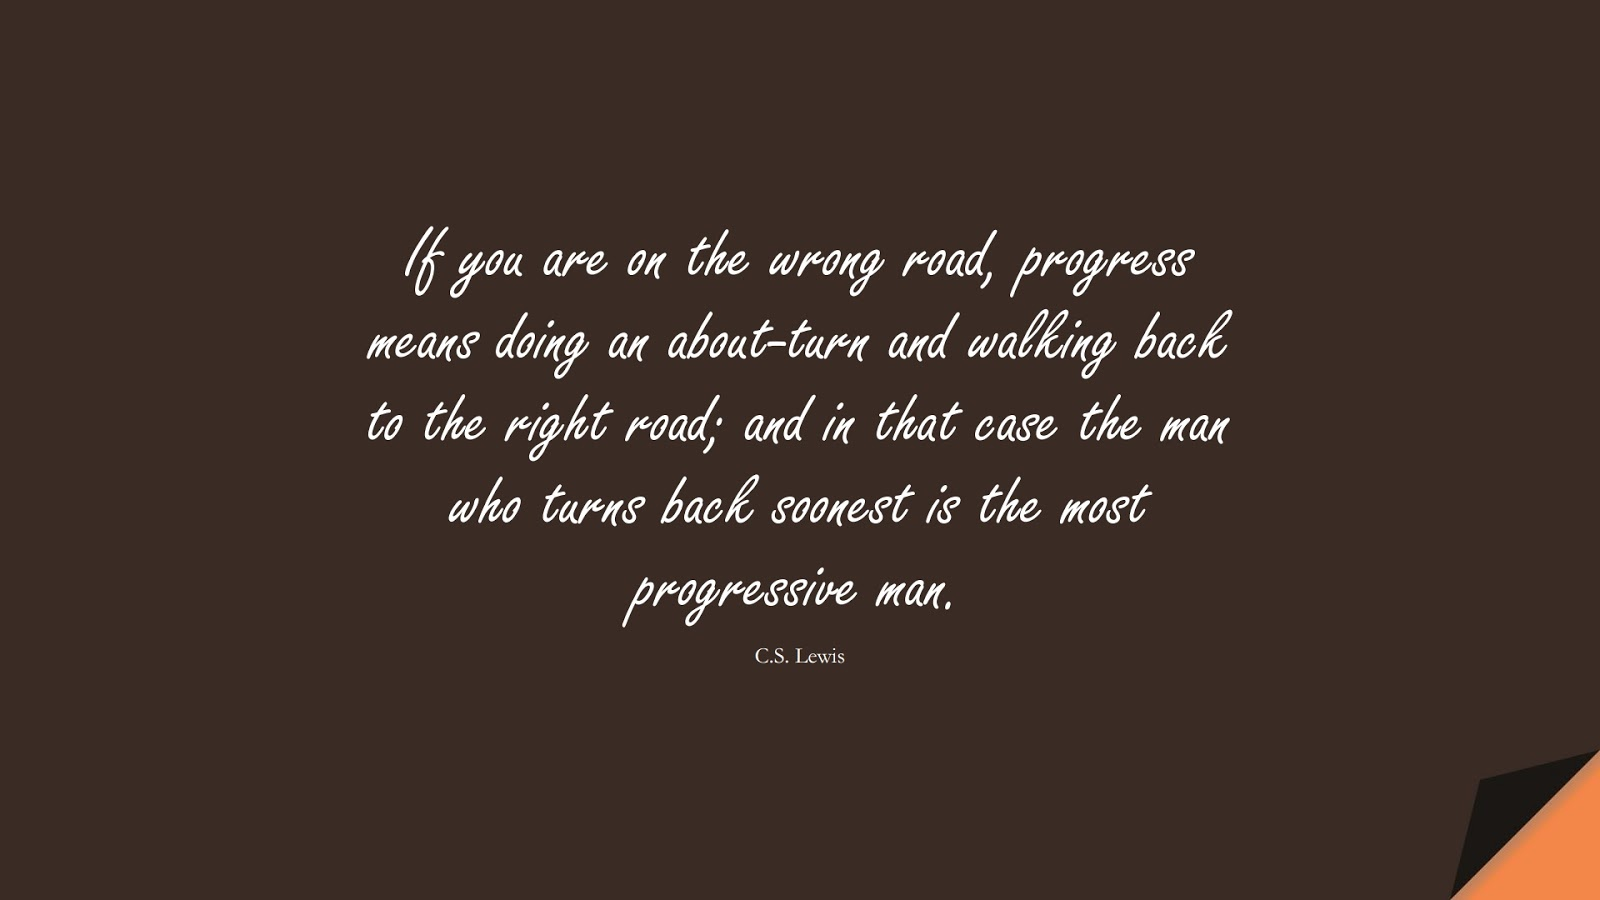 If you are on the wrong road, progress means doing an about-turn and walking back to the right road; and in that case the man who turns back soonest is the most progressive man. (C.S. Lewis);  #PerseveranceQuotes